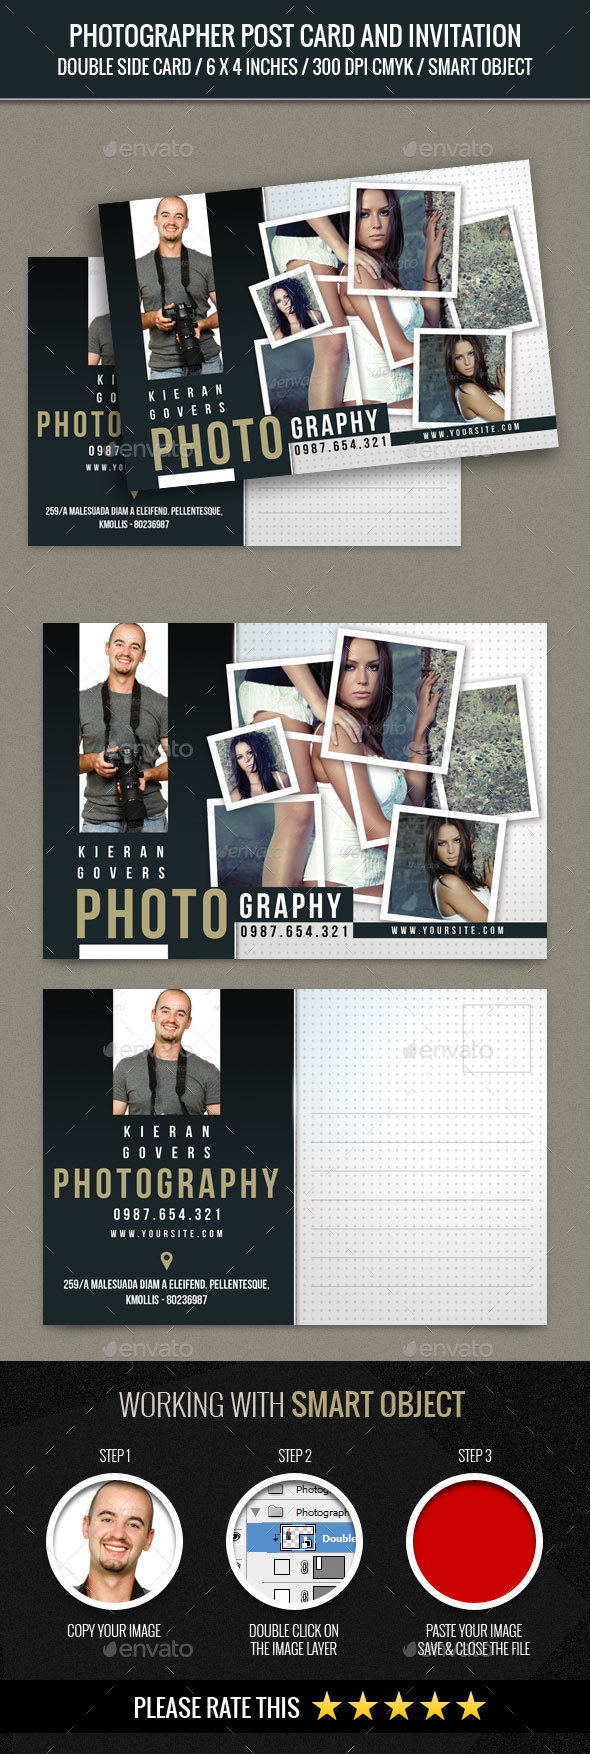 Photographer and Photography Post Card - Cards & Invites Print Templates